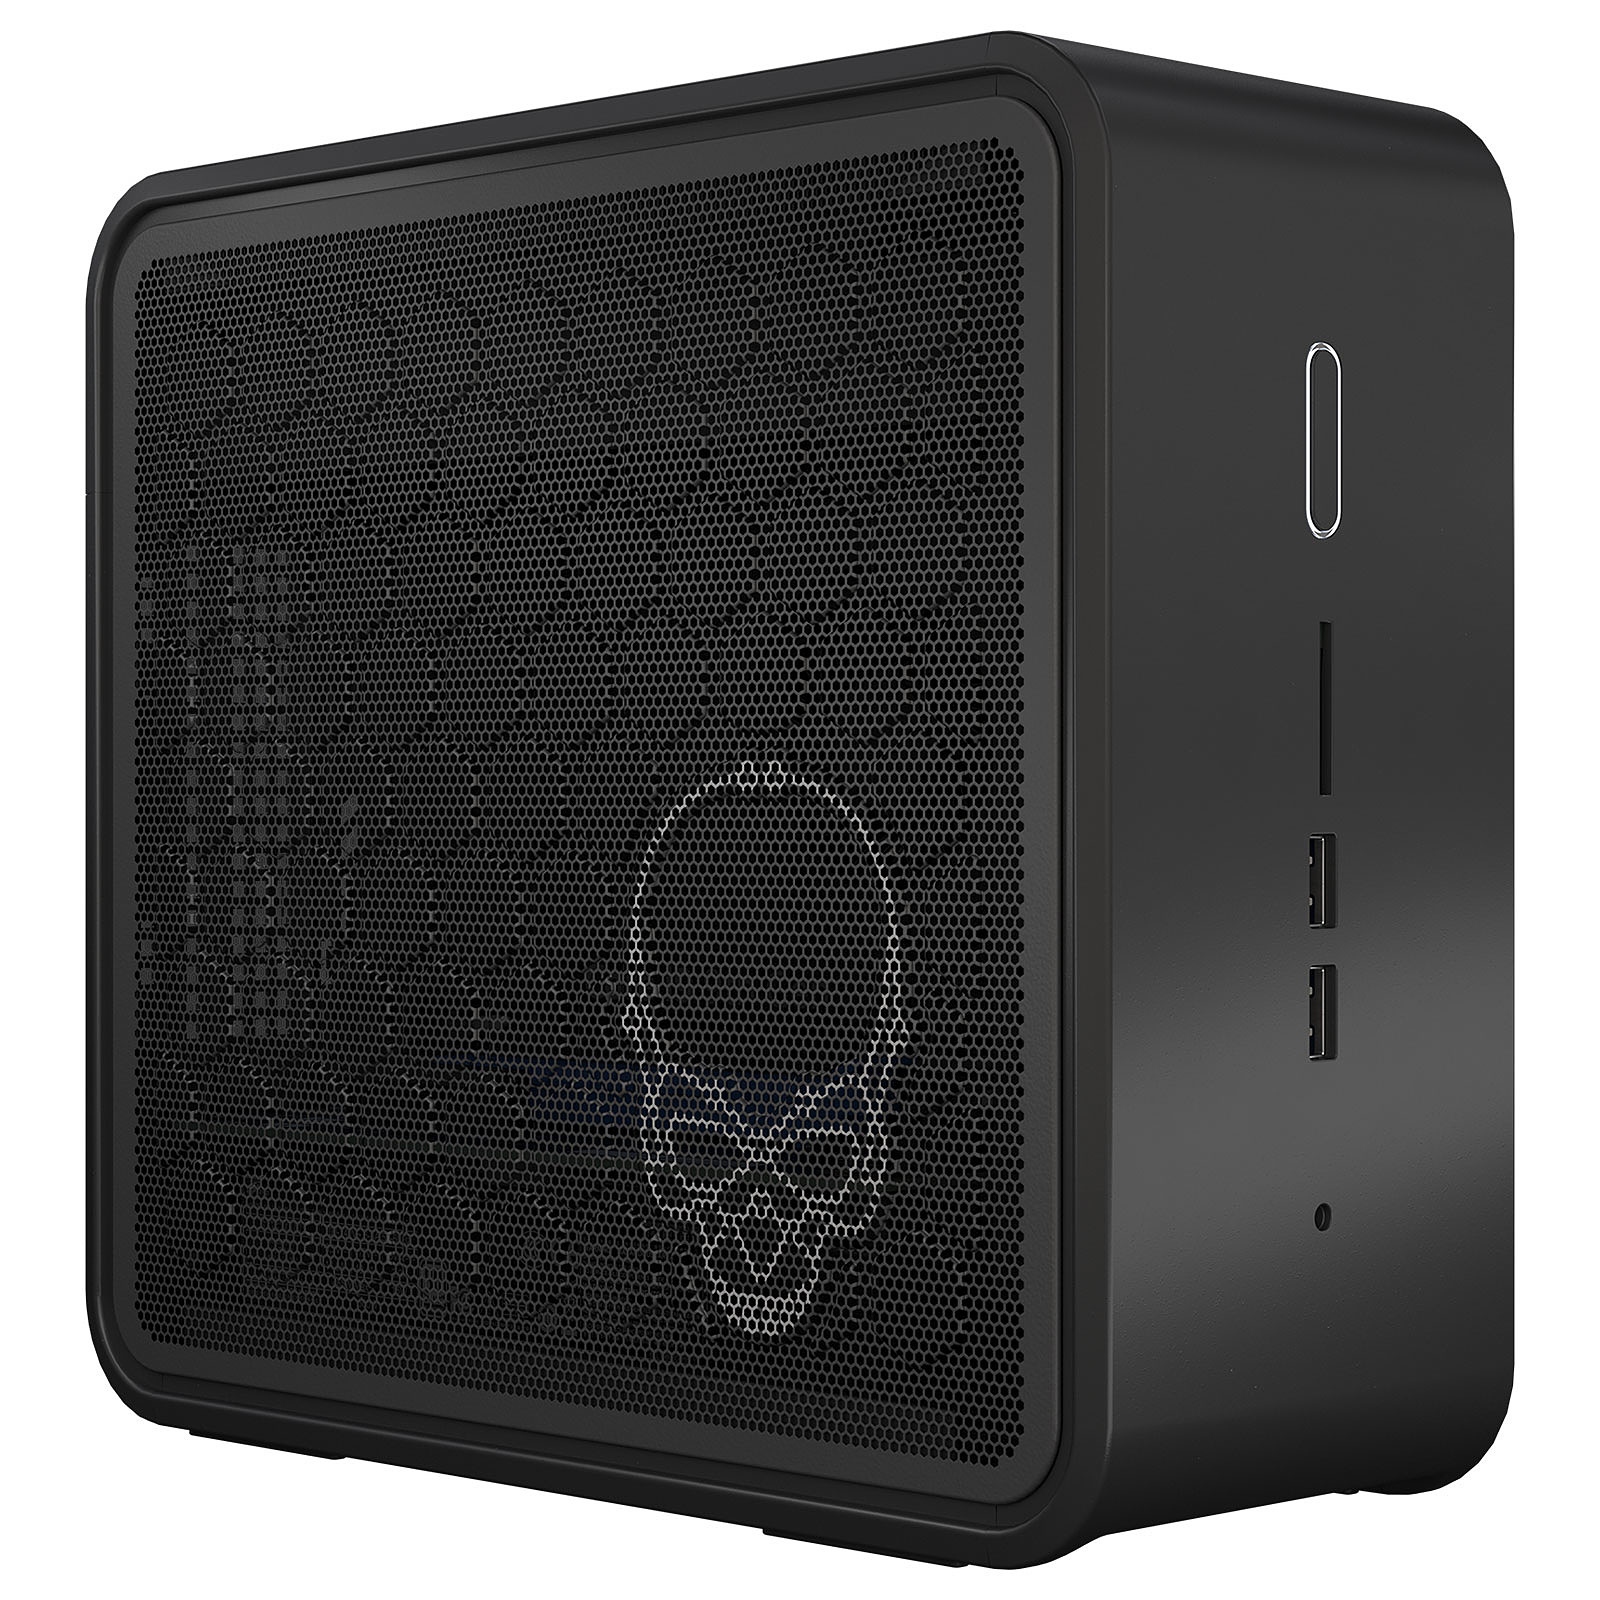 Intel NUC9 NUC9I7QNX (Ghost Canyon)